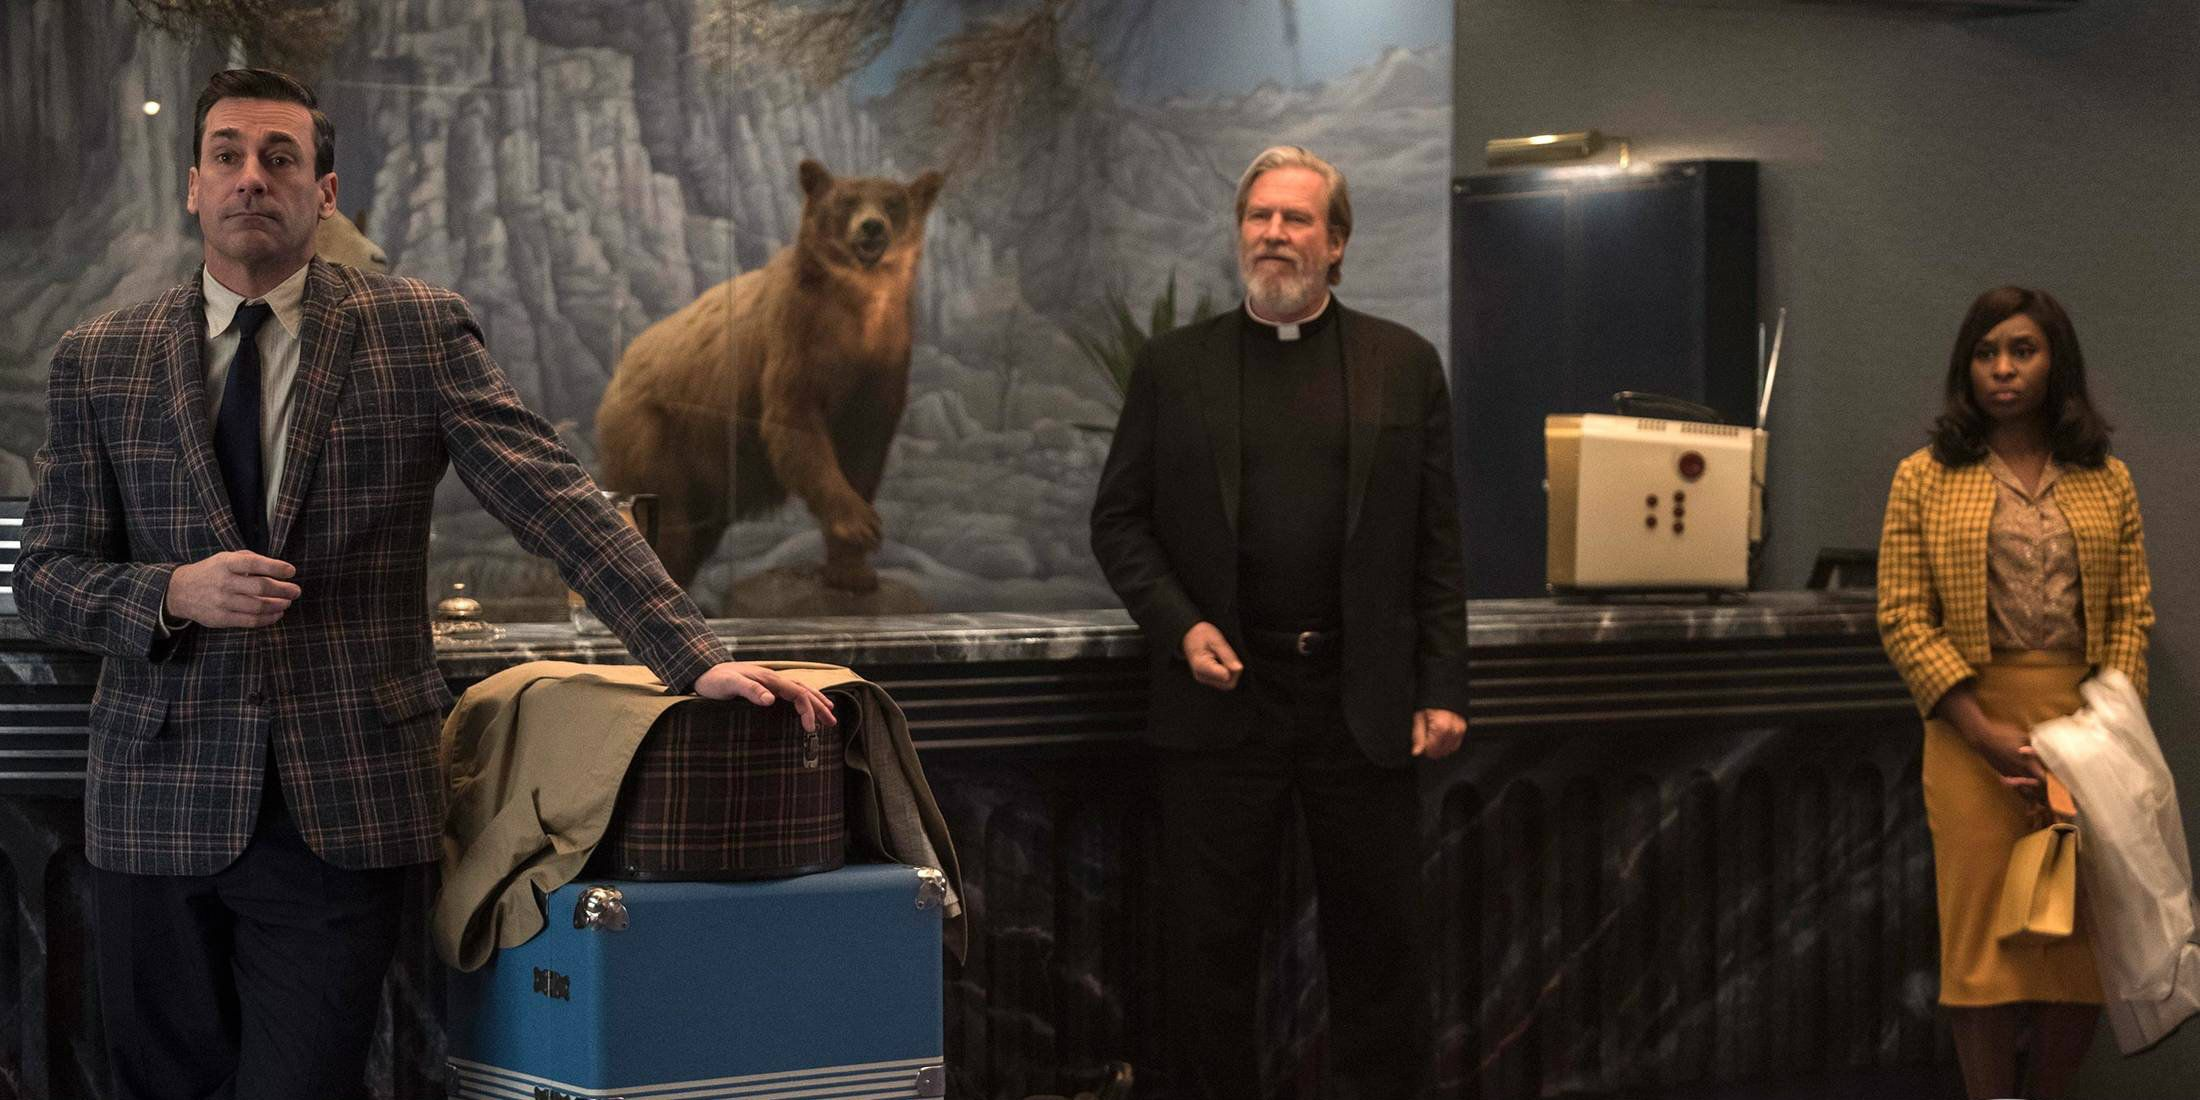 Bad Times at the El Royale Trailer: Everybody's Got a Secret